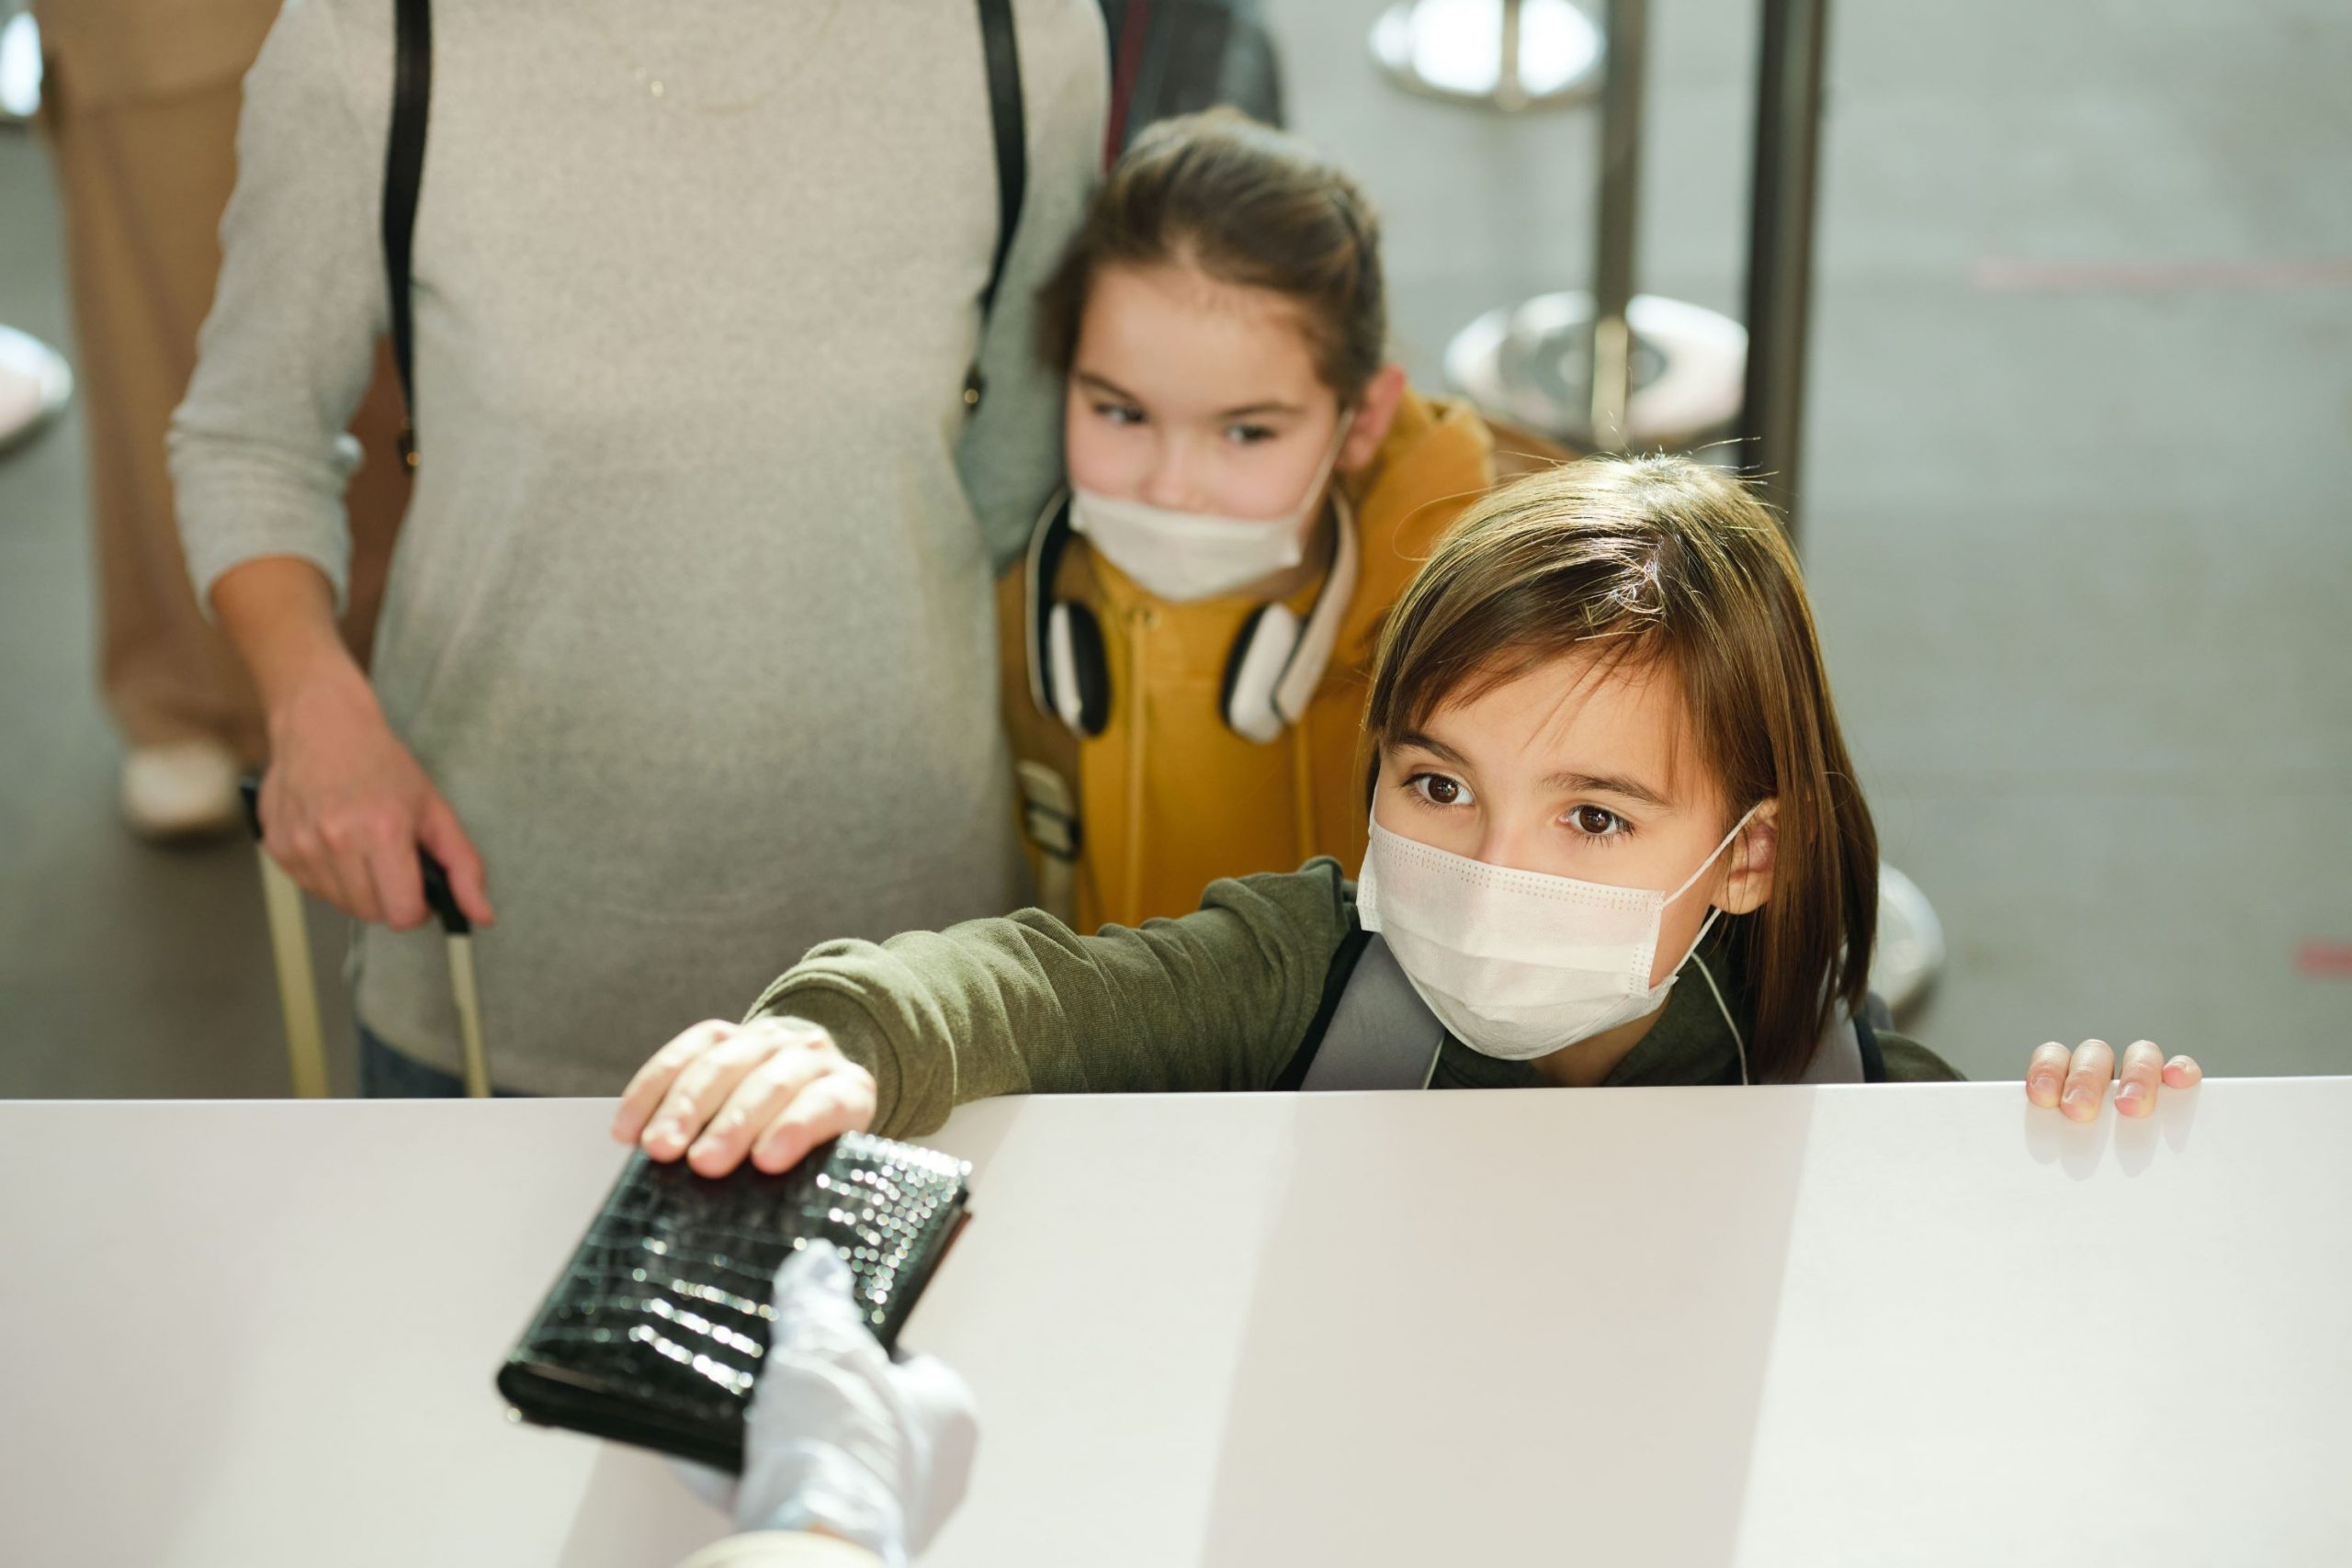 children-at-the-airport-ATF3X88-min-2